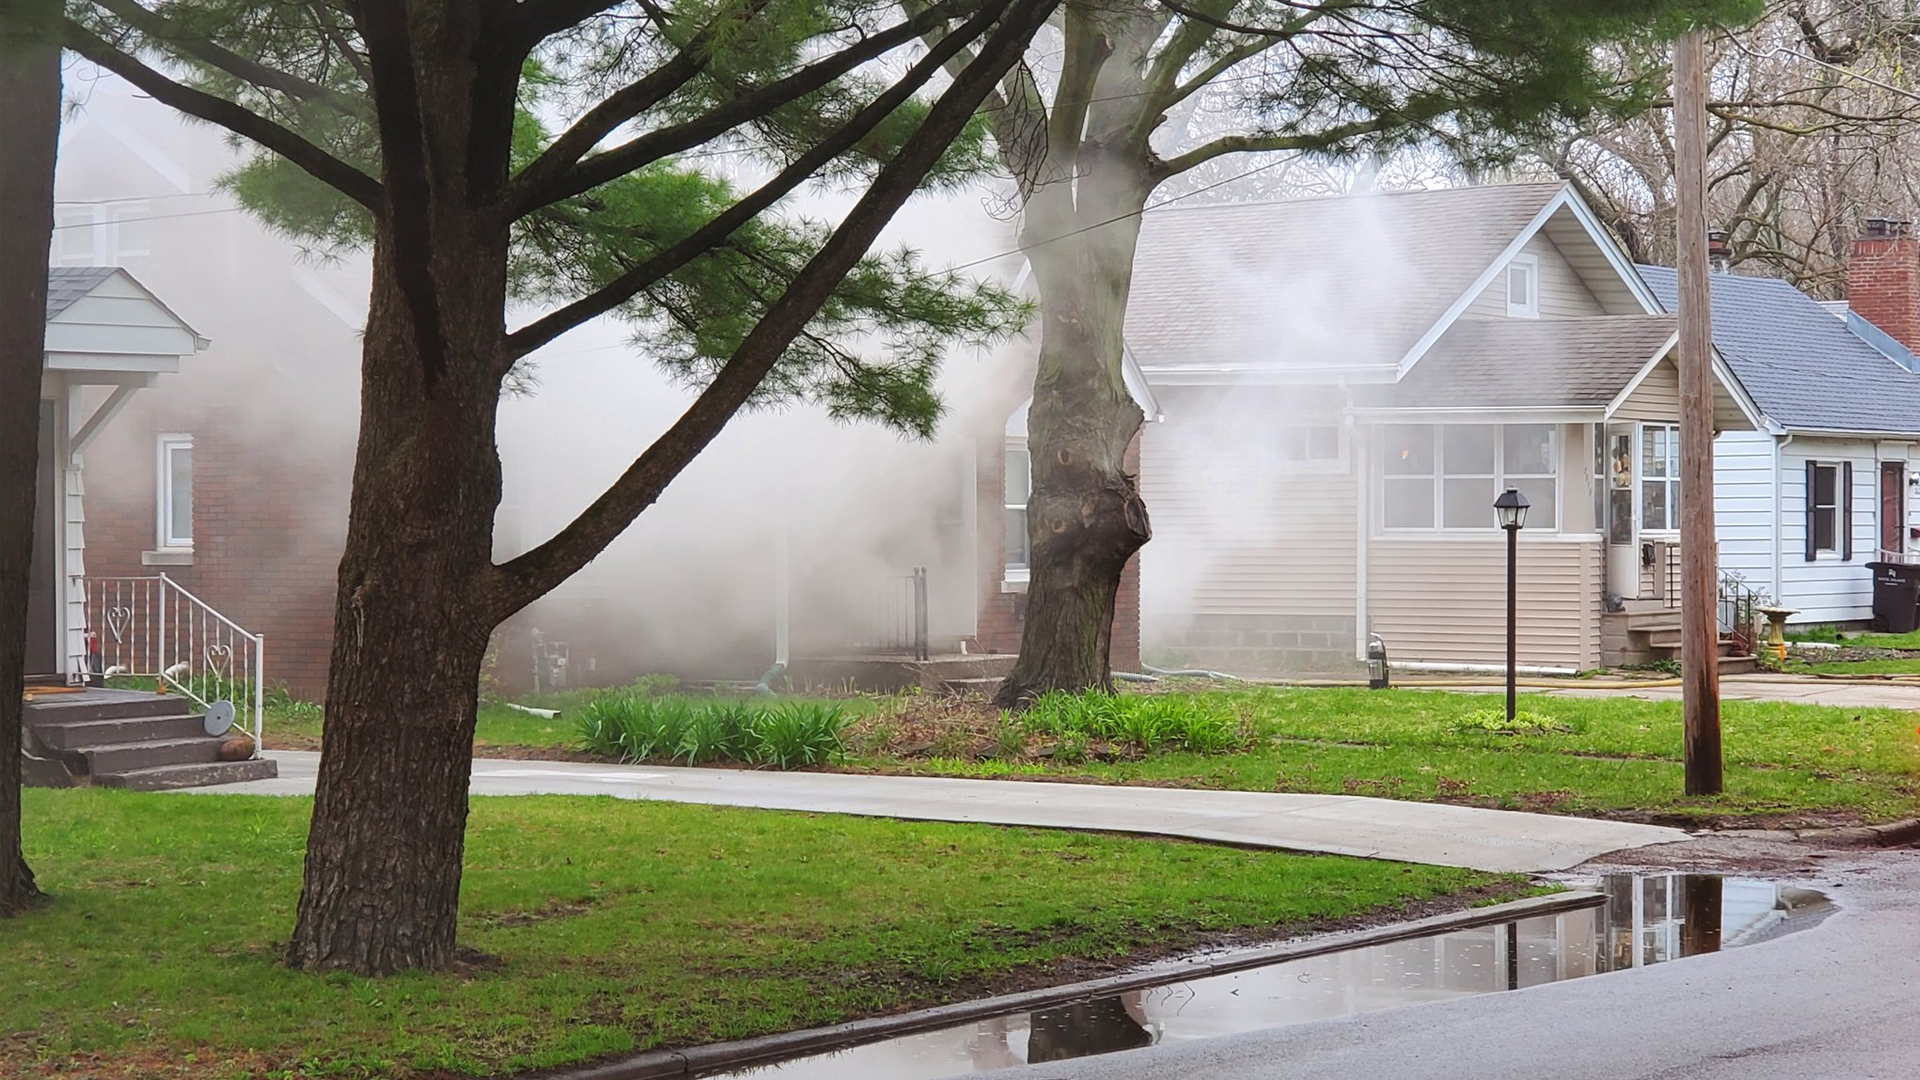 Rock Island Fire Department responded to a fire in the 2600 block of 15th Avenue on April 24 (photo: Ryan Risky, OurQuadCities.com).